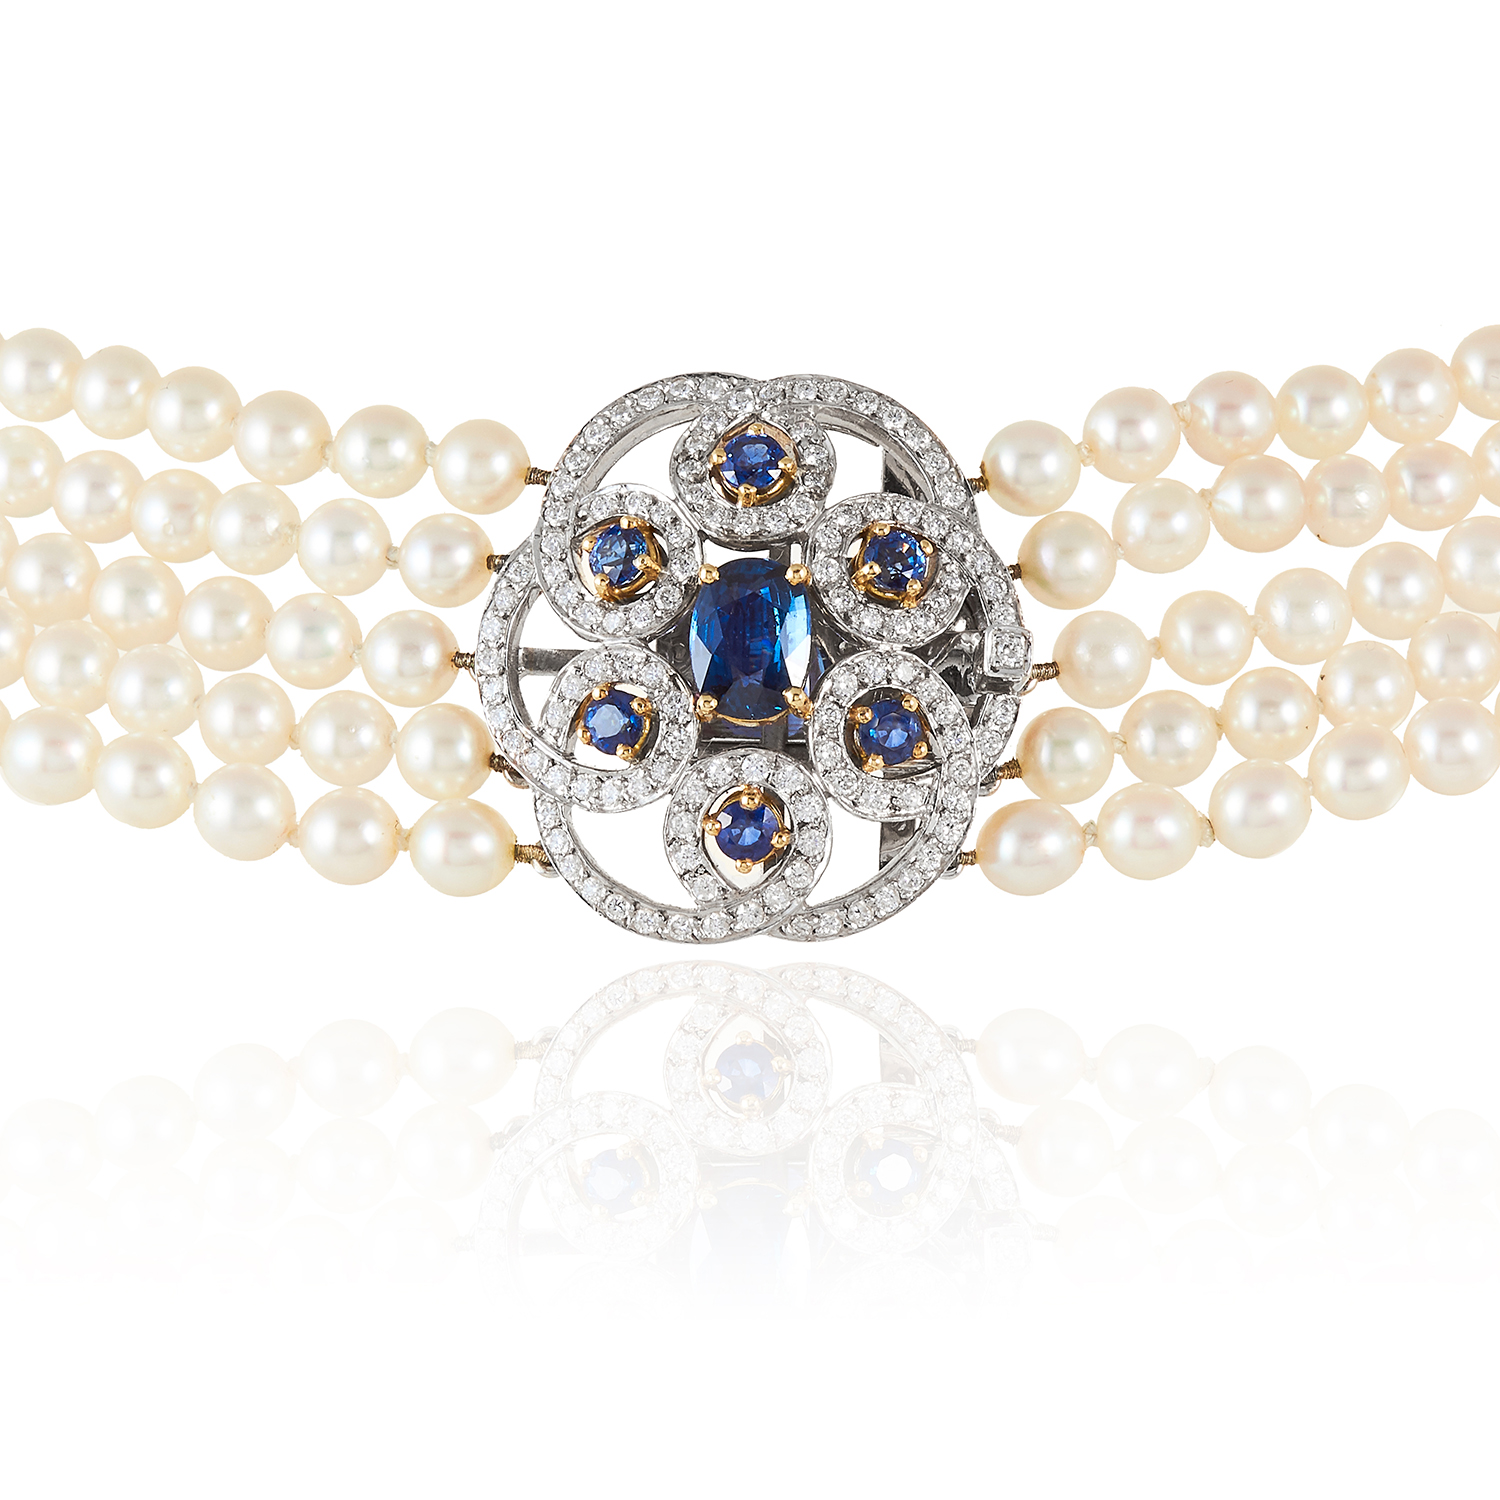 A PEARL, SAPPHIRE AND DIAMOND CHOKER NECKLACE, E WOLFE & CO in 18ct white gold, comprising five rows